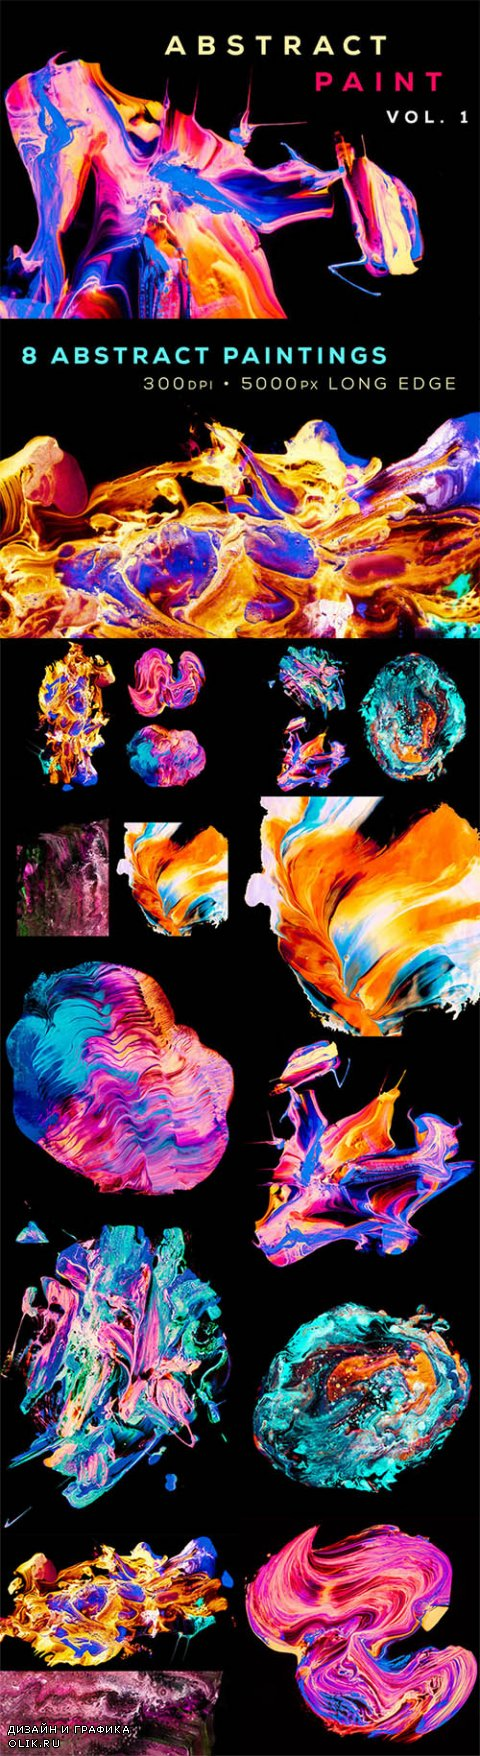 Abstract Paint, Vol. 1 - Creativemarket 468148